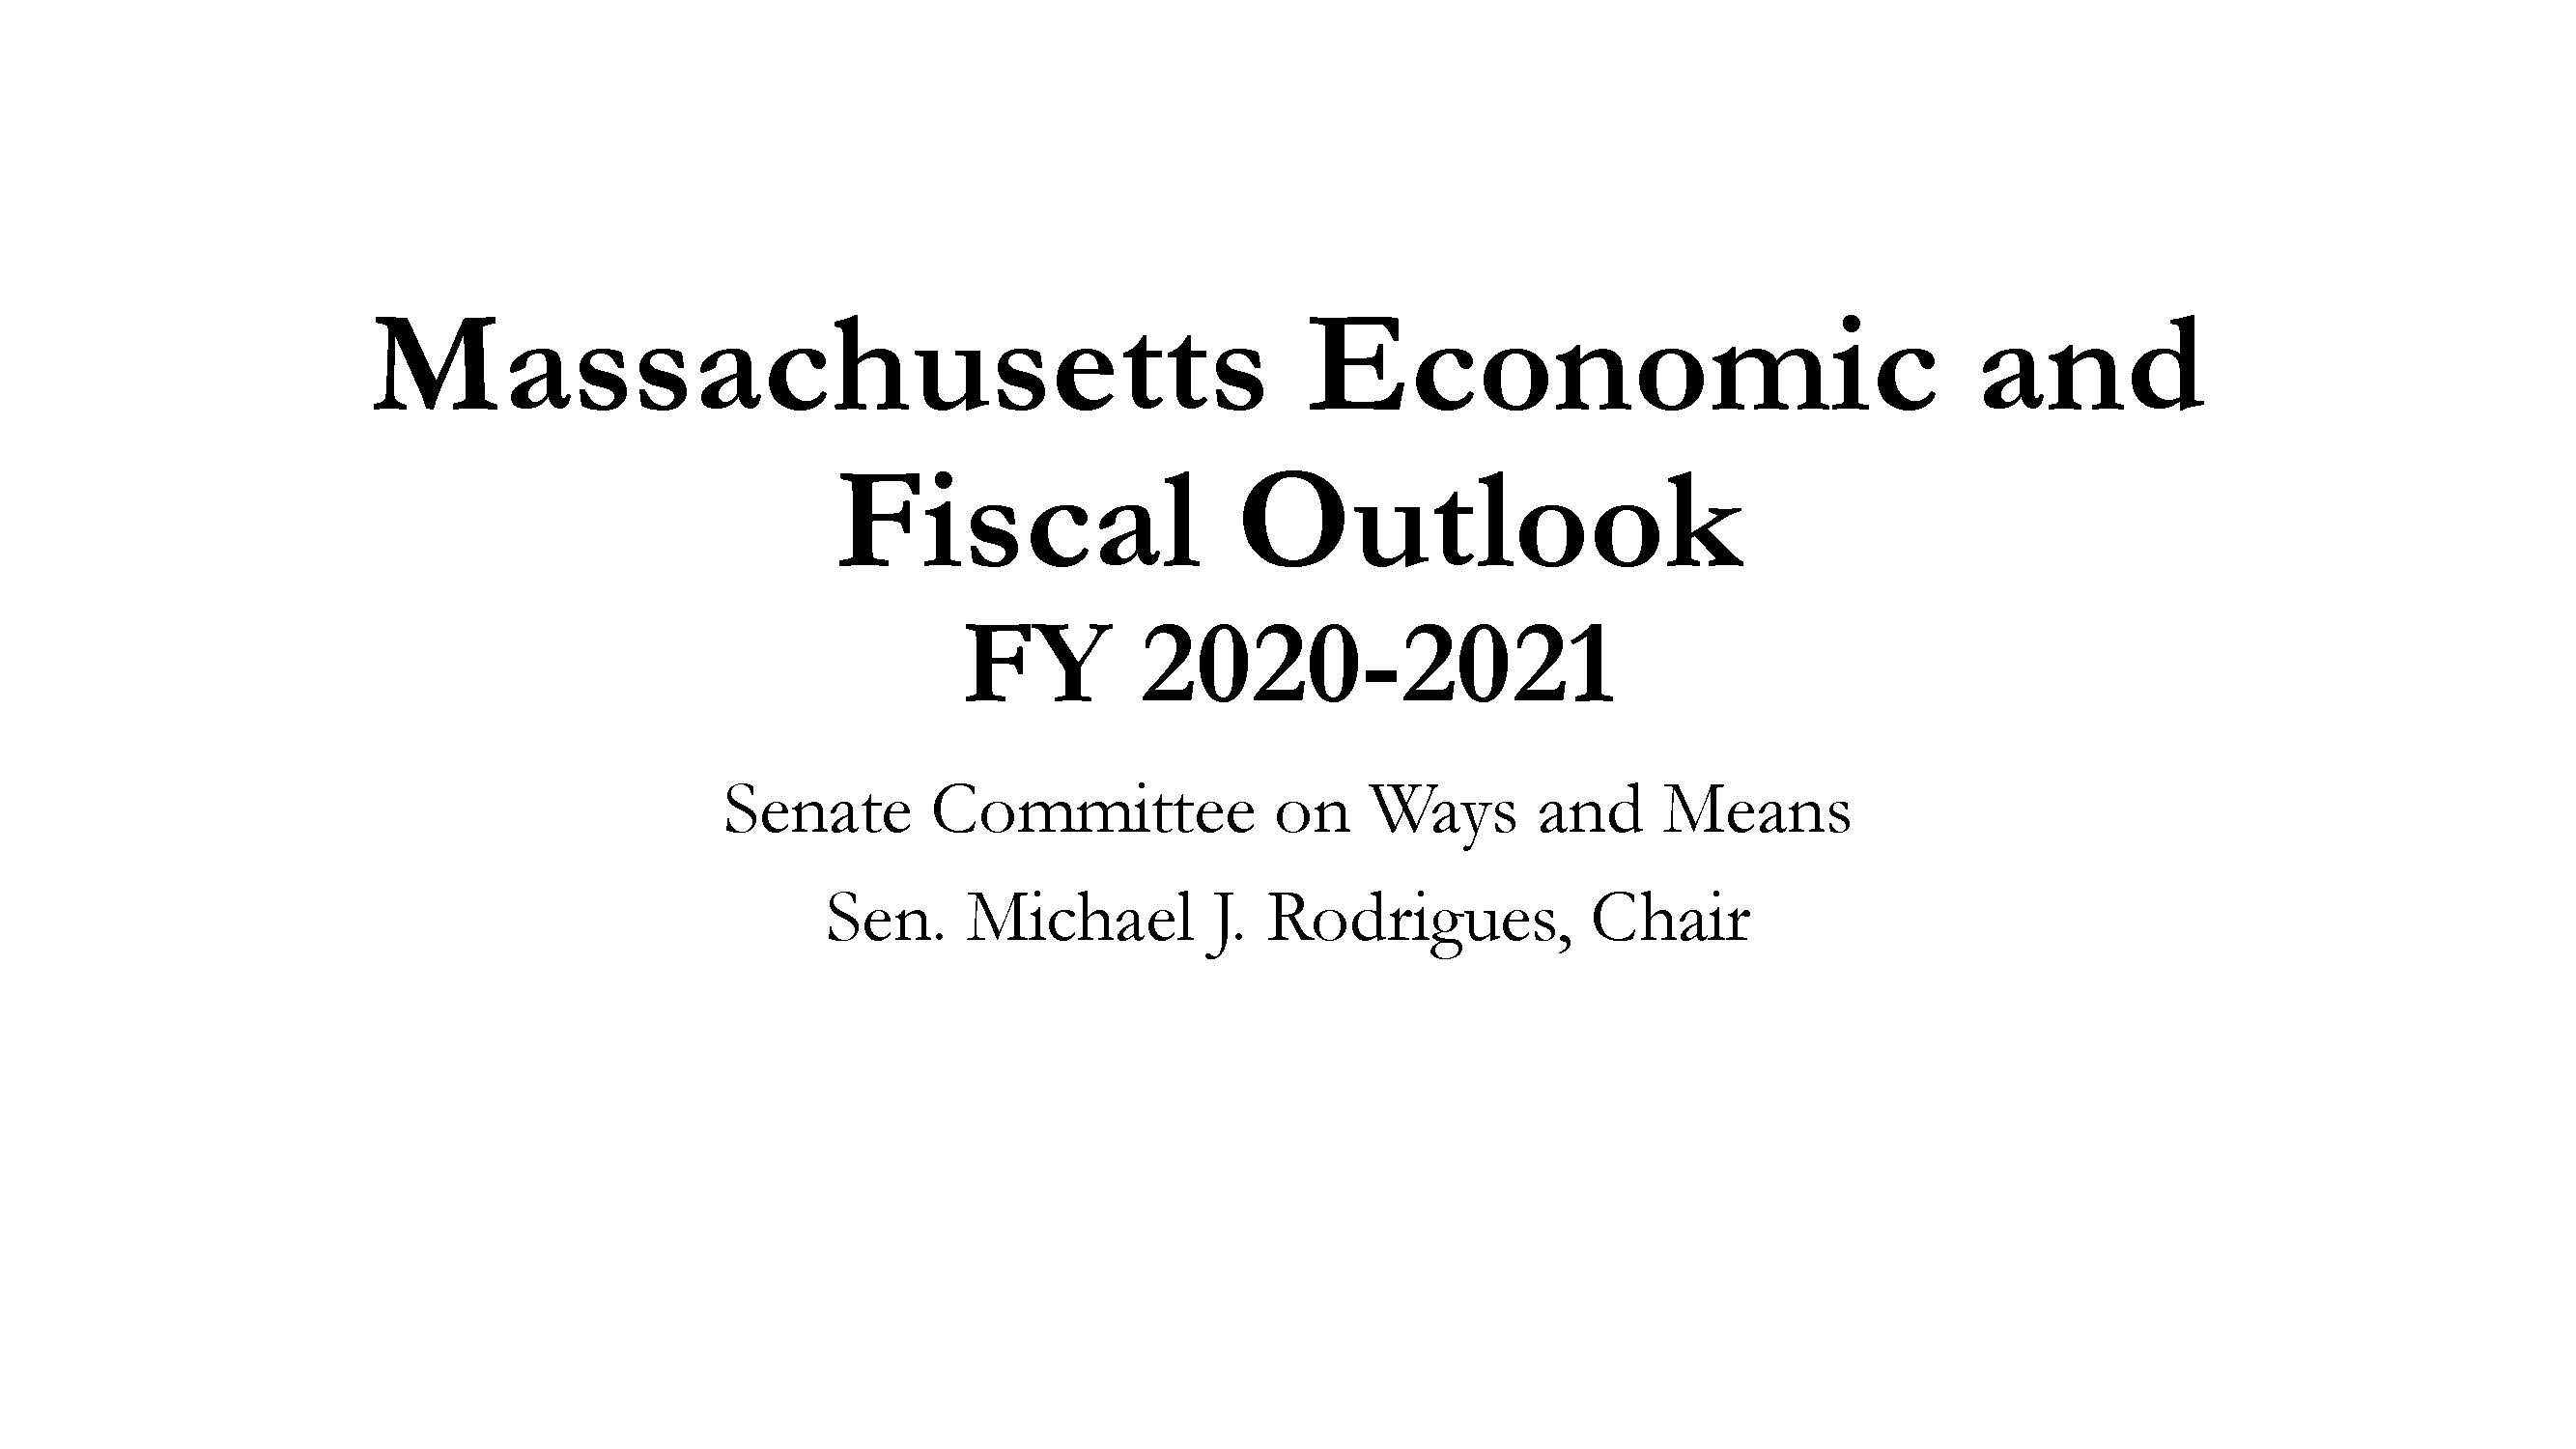 05-05 Massachusetts Economic and Fiscal Outlook Caucus Presentation_Chairman Michael Rodrigues